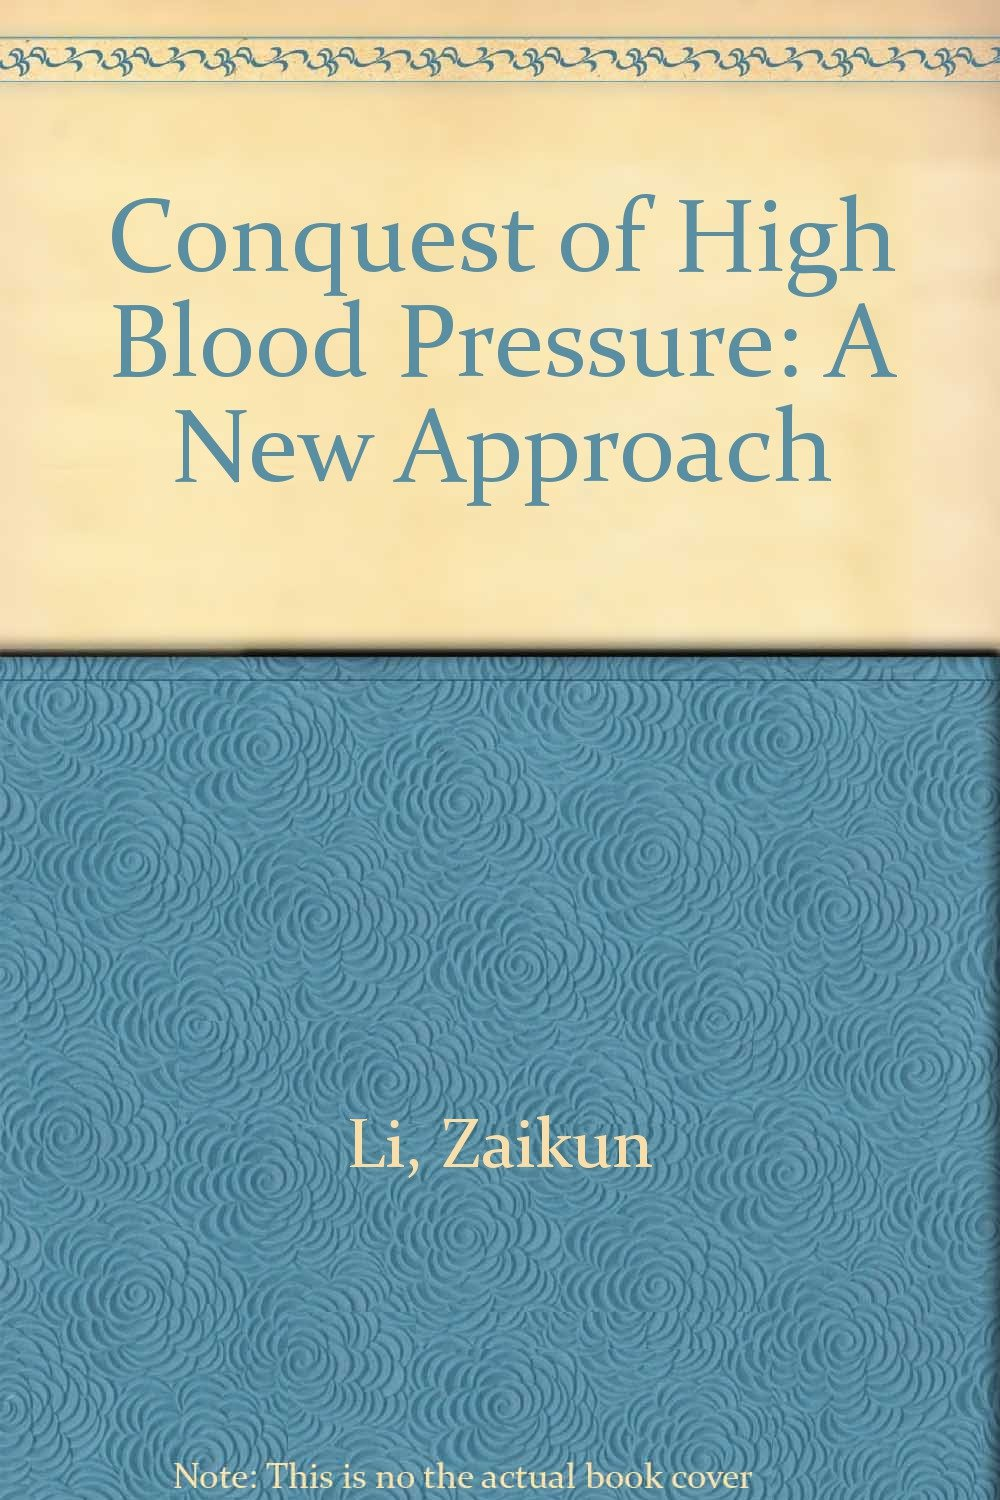 Conquest of High Blood Pressure: A New Approach PDF